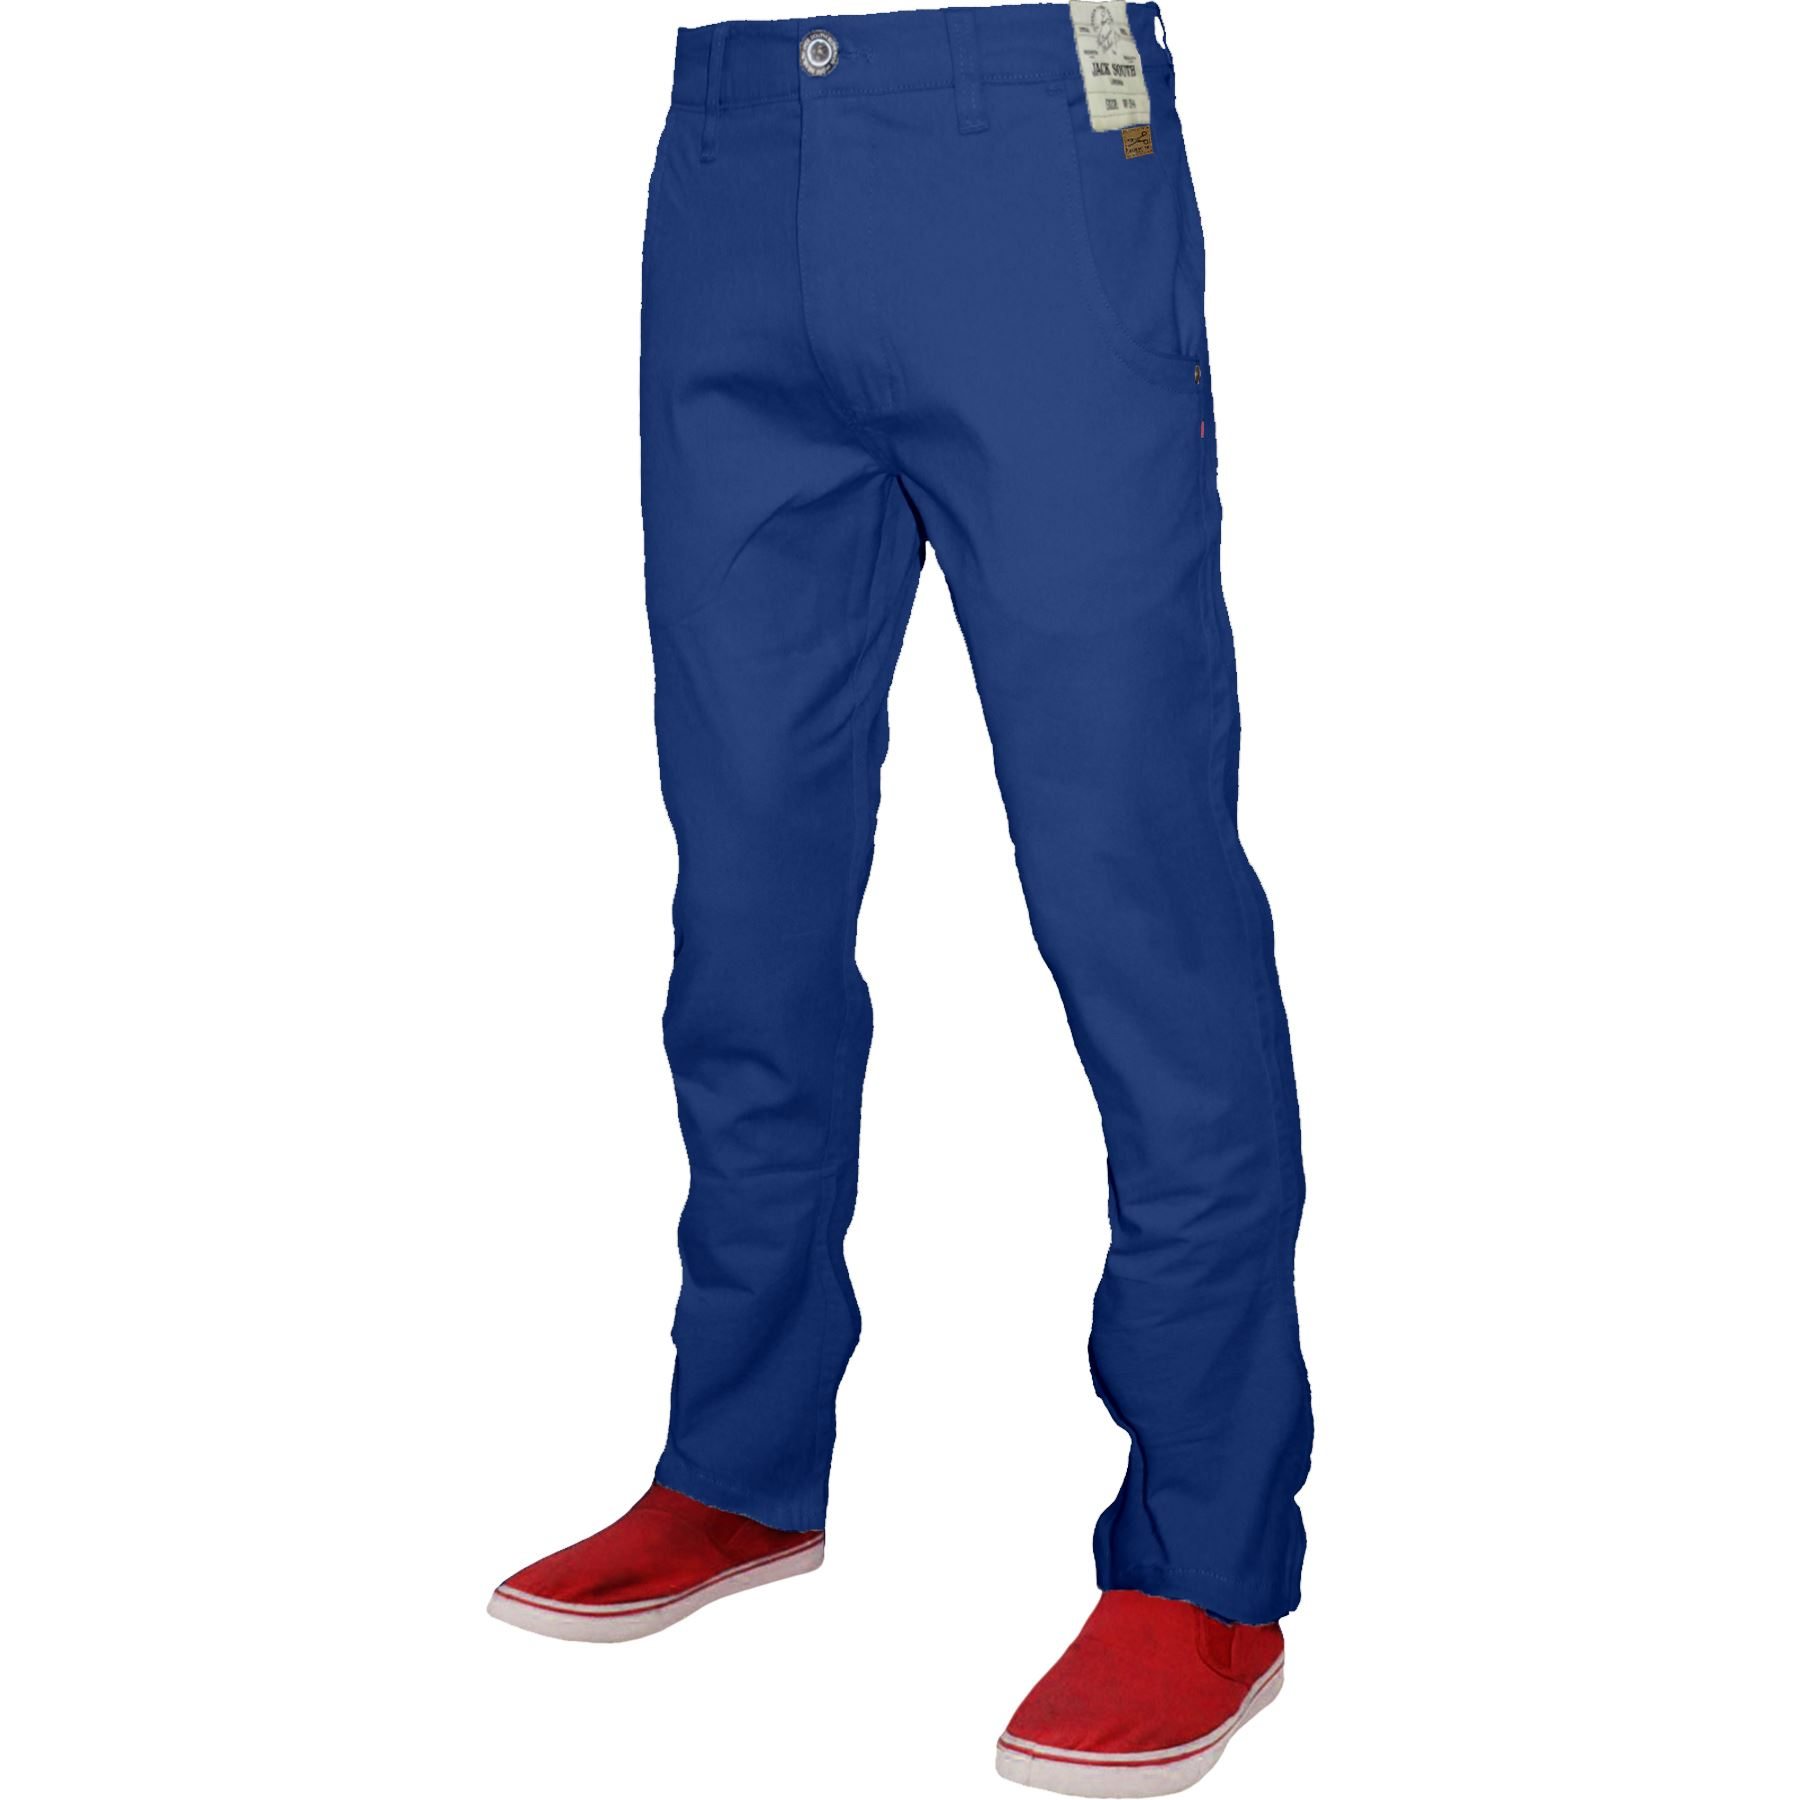 Mens-Chino-Classic-Regular-Fit-Trouser-Casual-Stretch-Spandex-Pants-Size-32-40 thumbnail 21